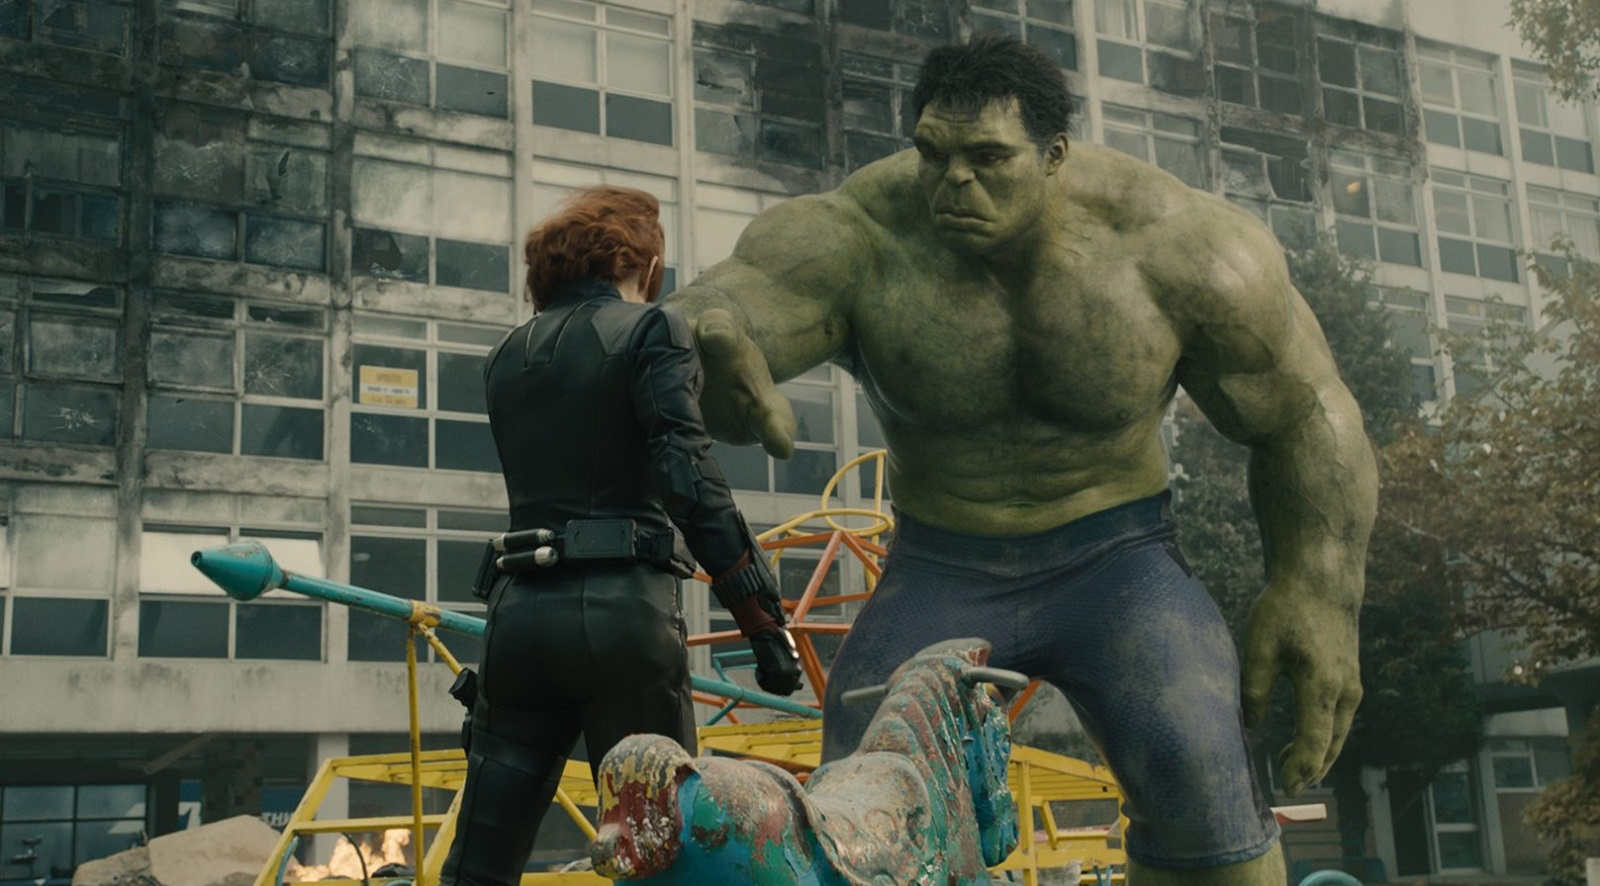 Marvel's Avengers: Age Of Ultron. Pictured are the Black Widow (Scarlett Johansson) and Hulk (Mark Ruffalo).